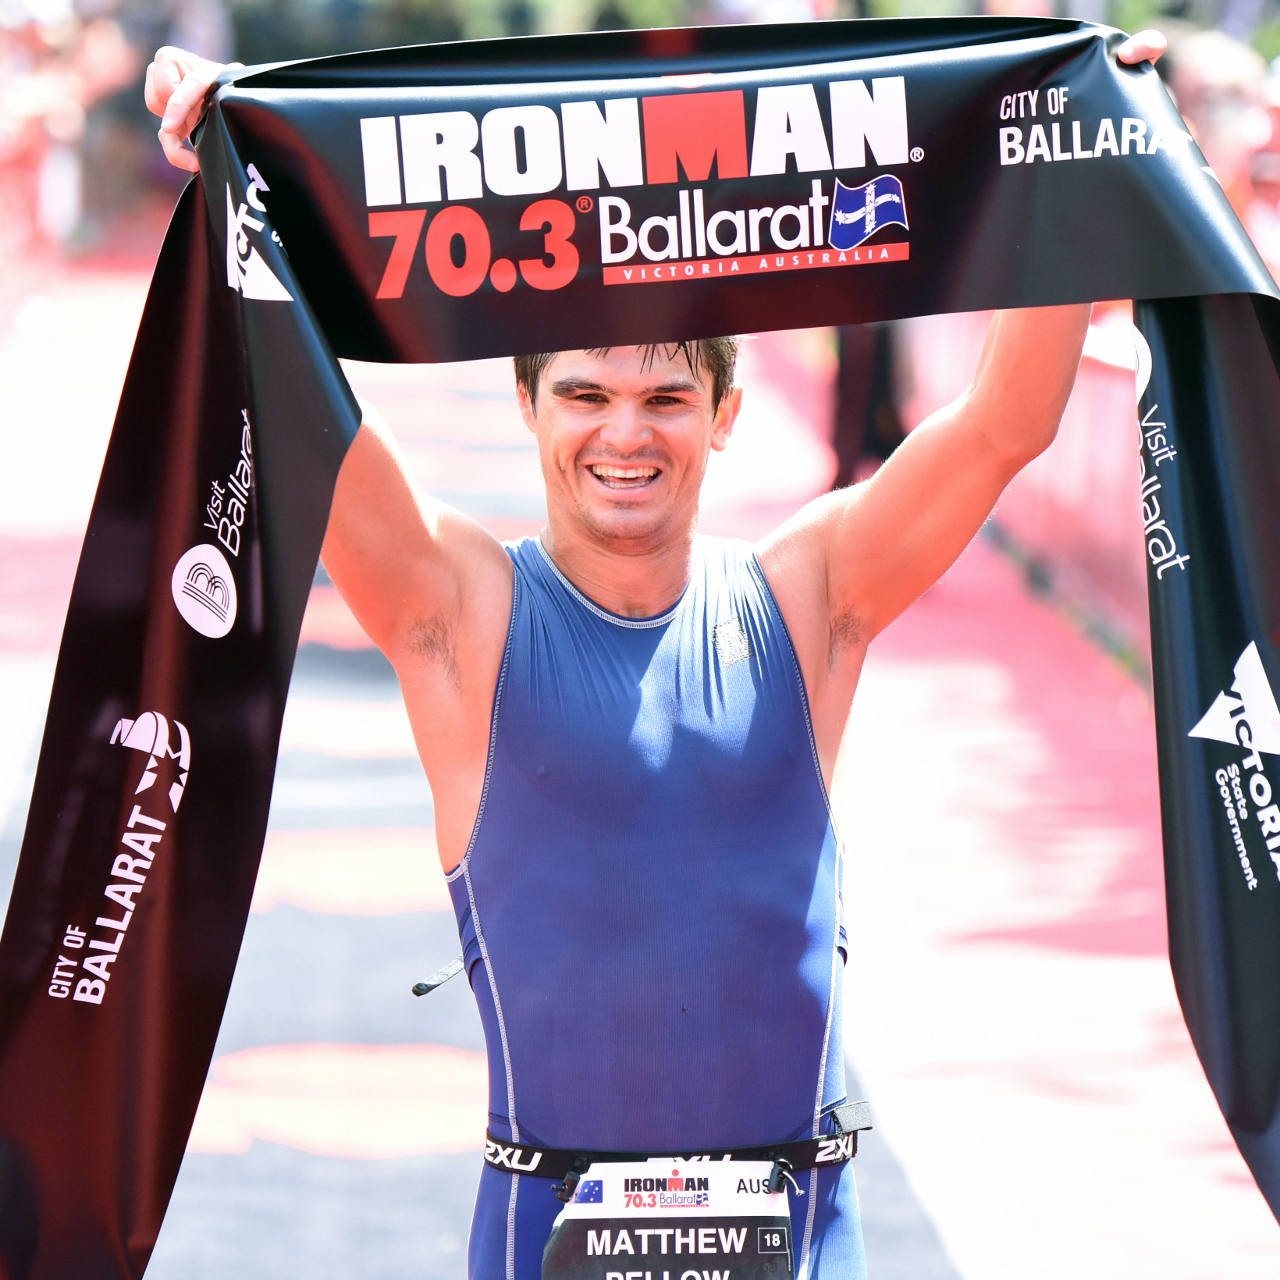 Matthew Pellow takes his maiden Ironman 70.3 win - Photo Credit: Delly Carr // IRONMAN Asia-Pacific